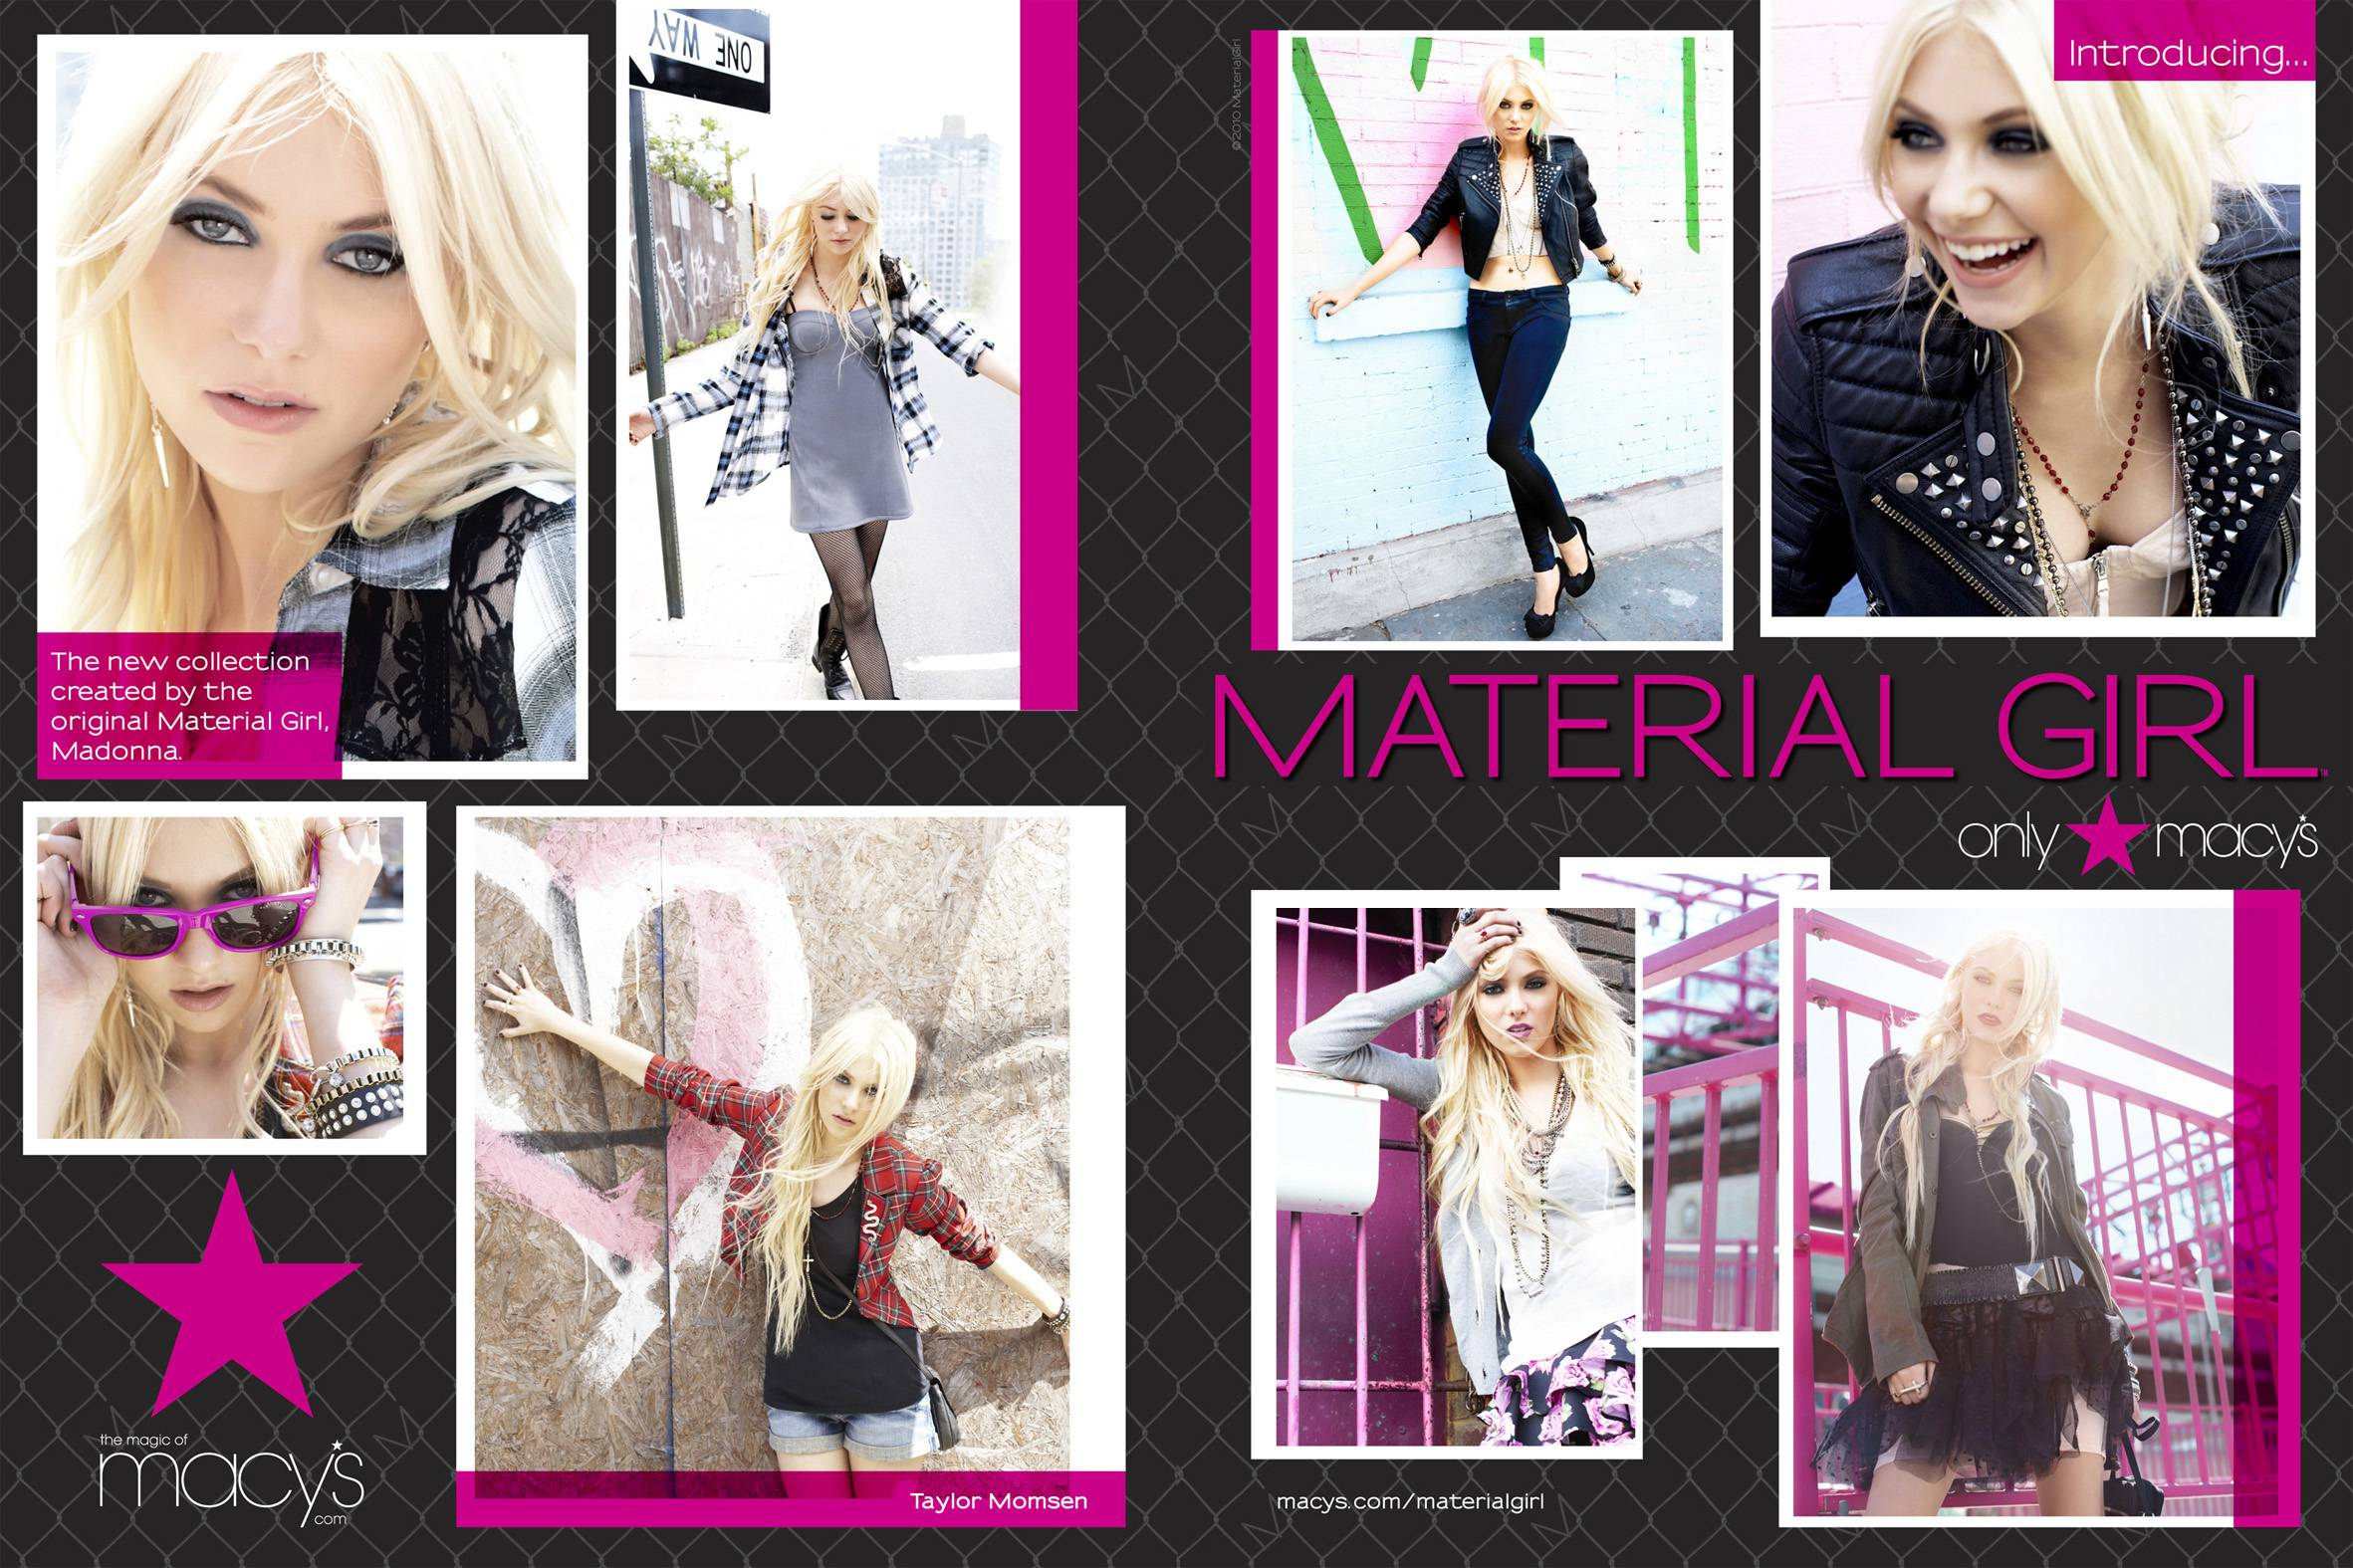 Material Girl Clothing Line to Launch at Macy's